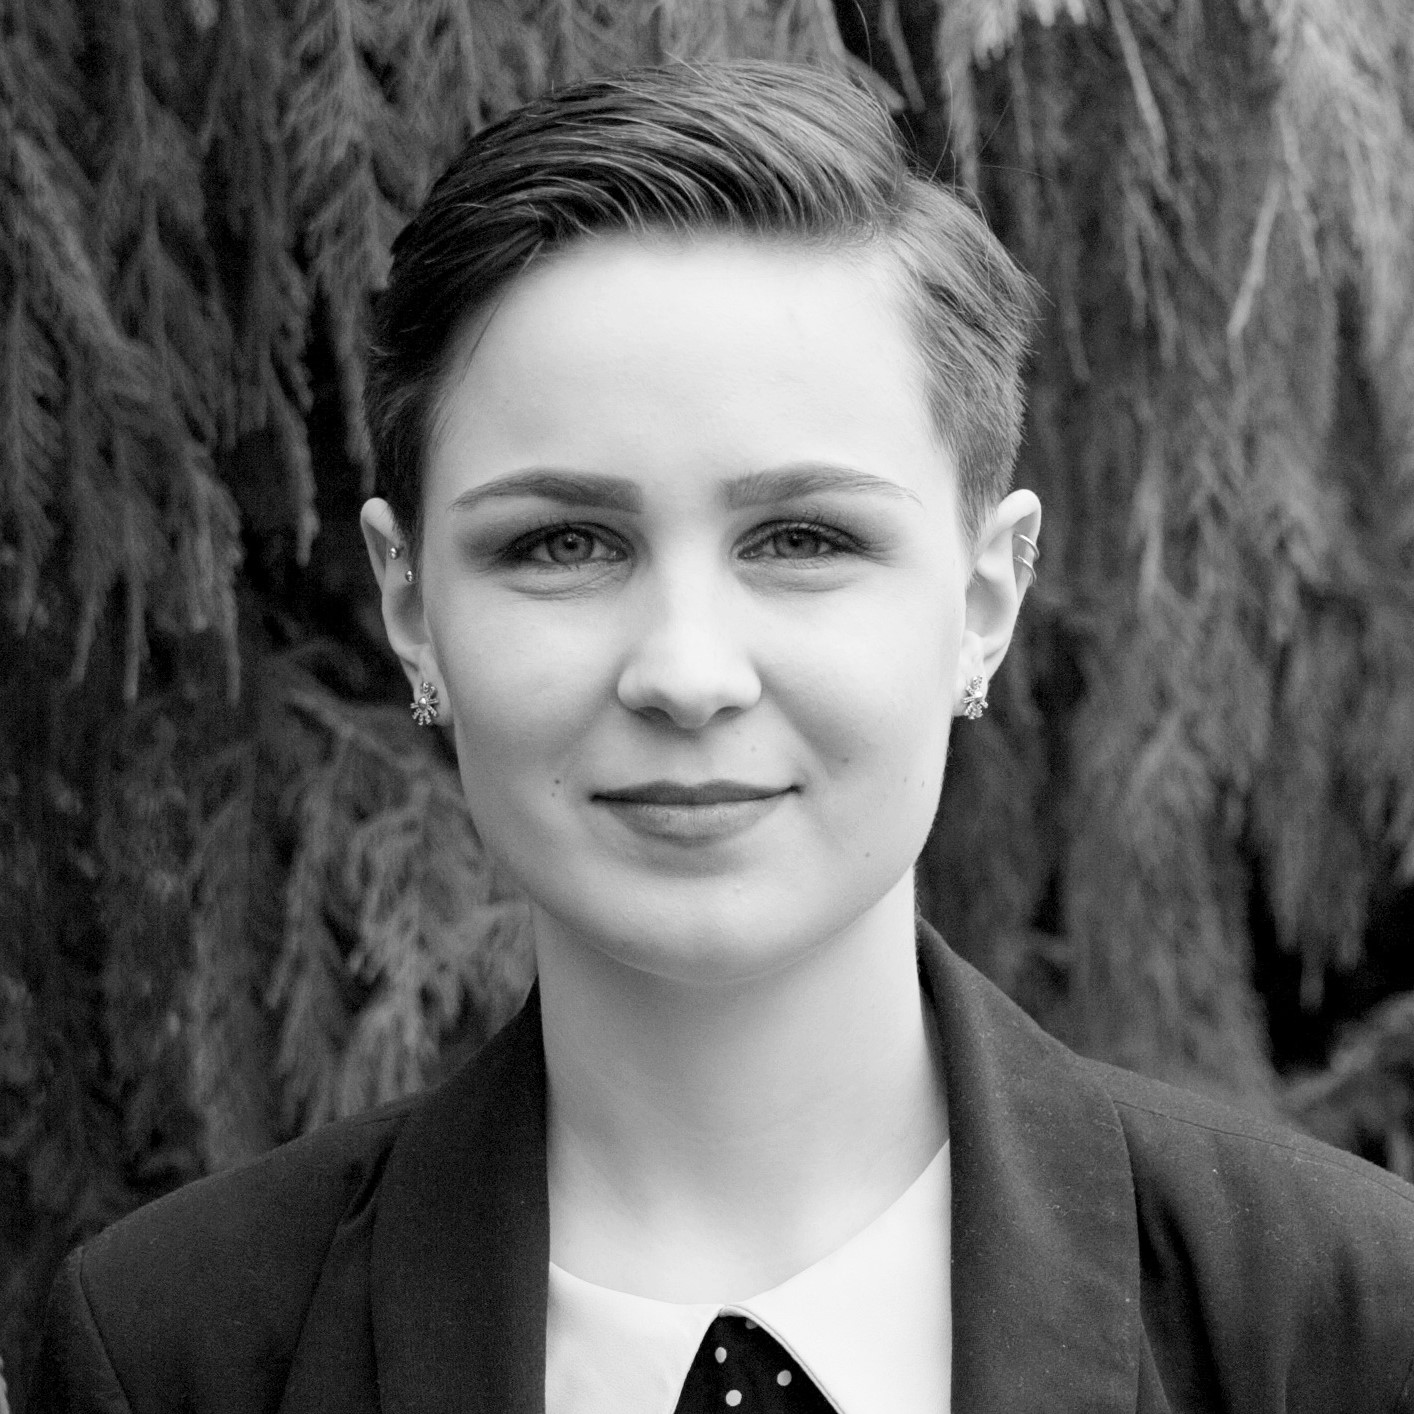 Olivia PARCZYK, Liaison Officer for Asia, Erasmus Student Network (ESN)